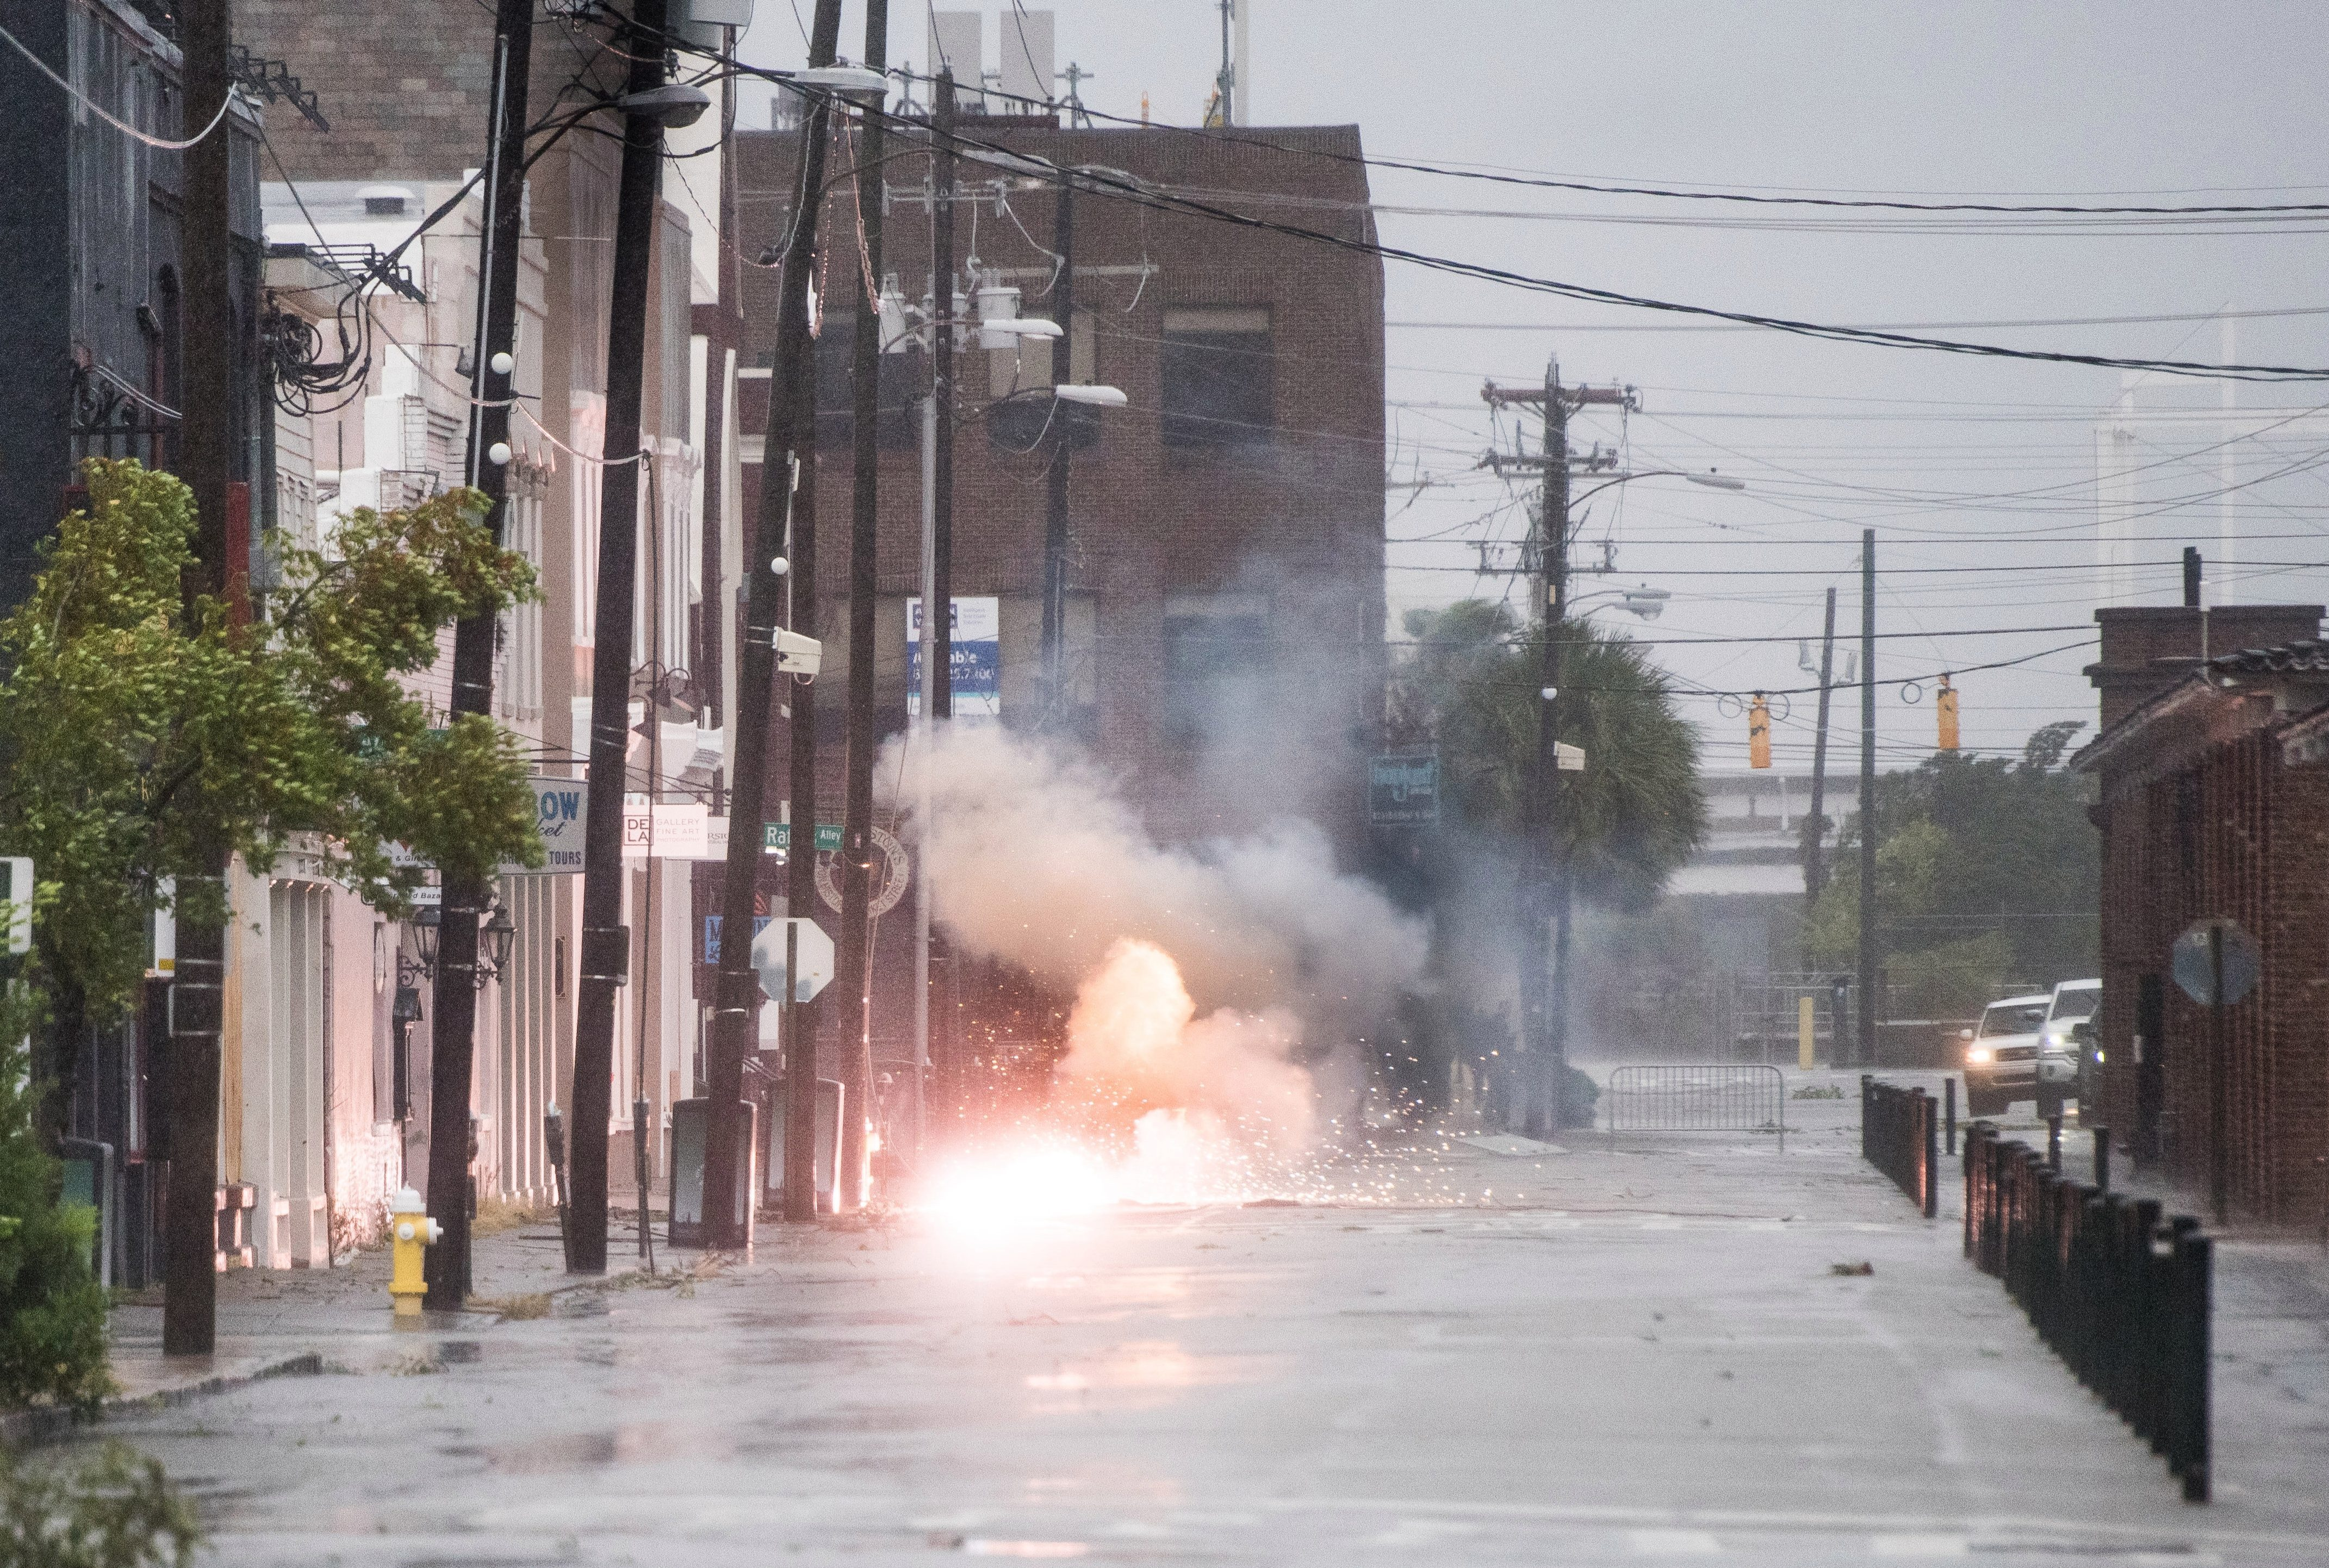 Power lines spark in flood water in Charleston, South Carolina